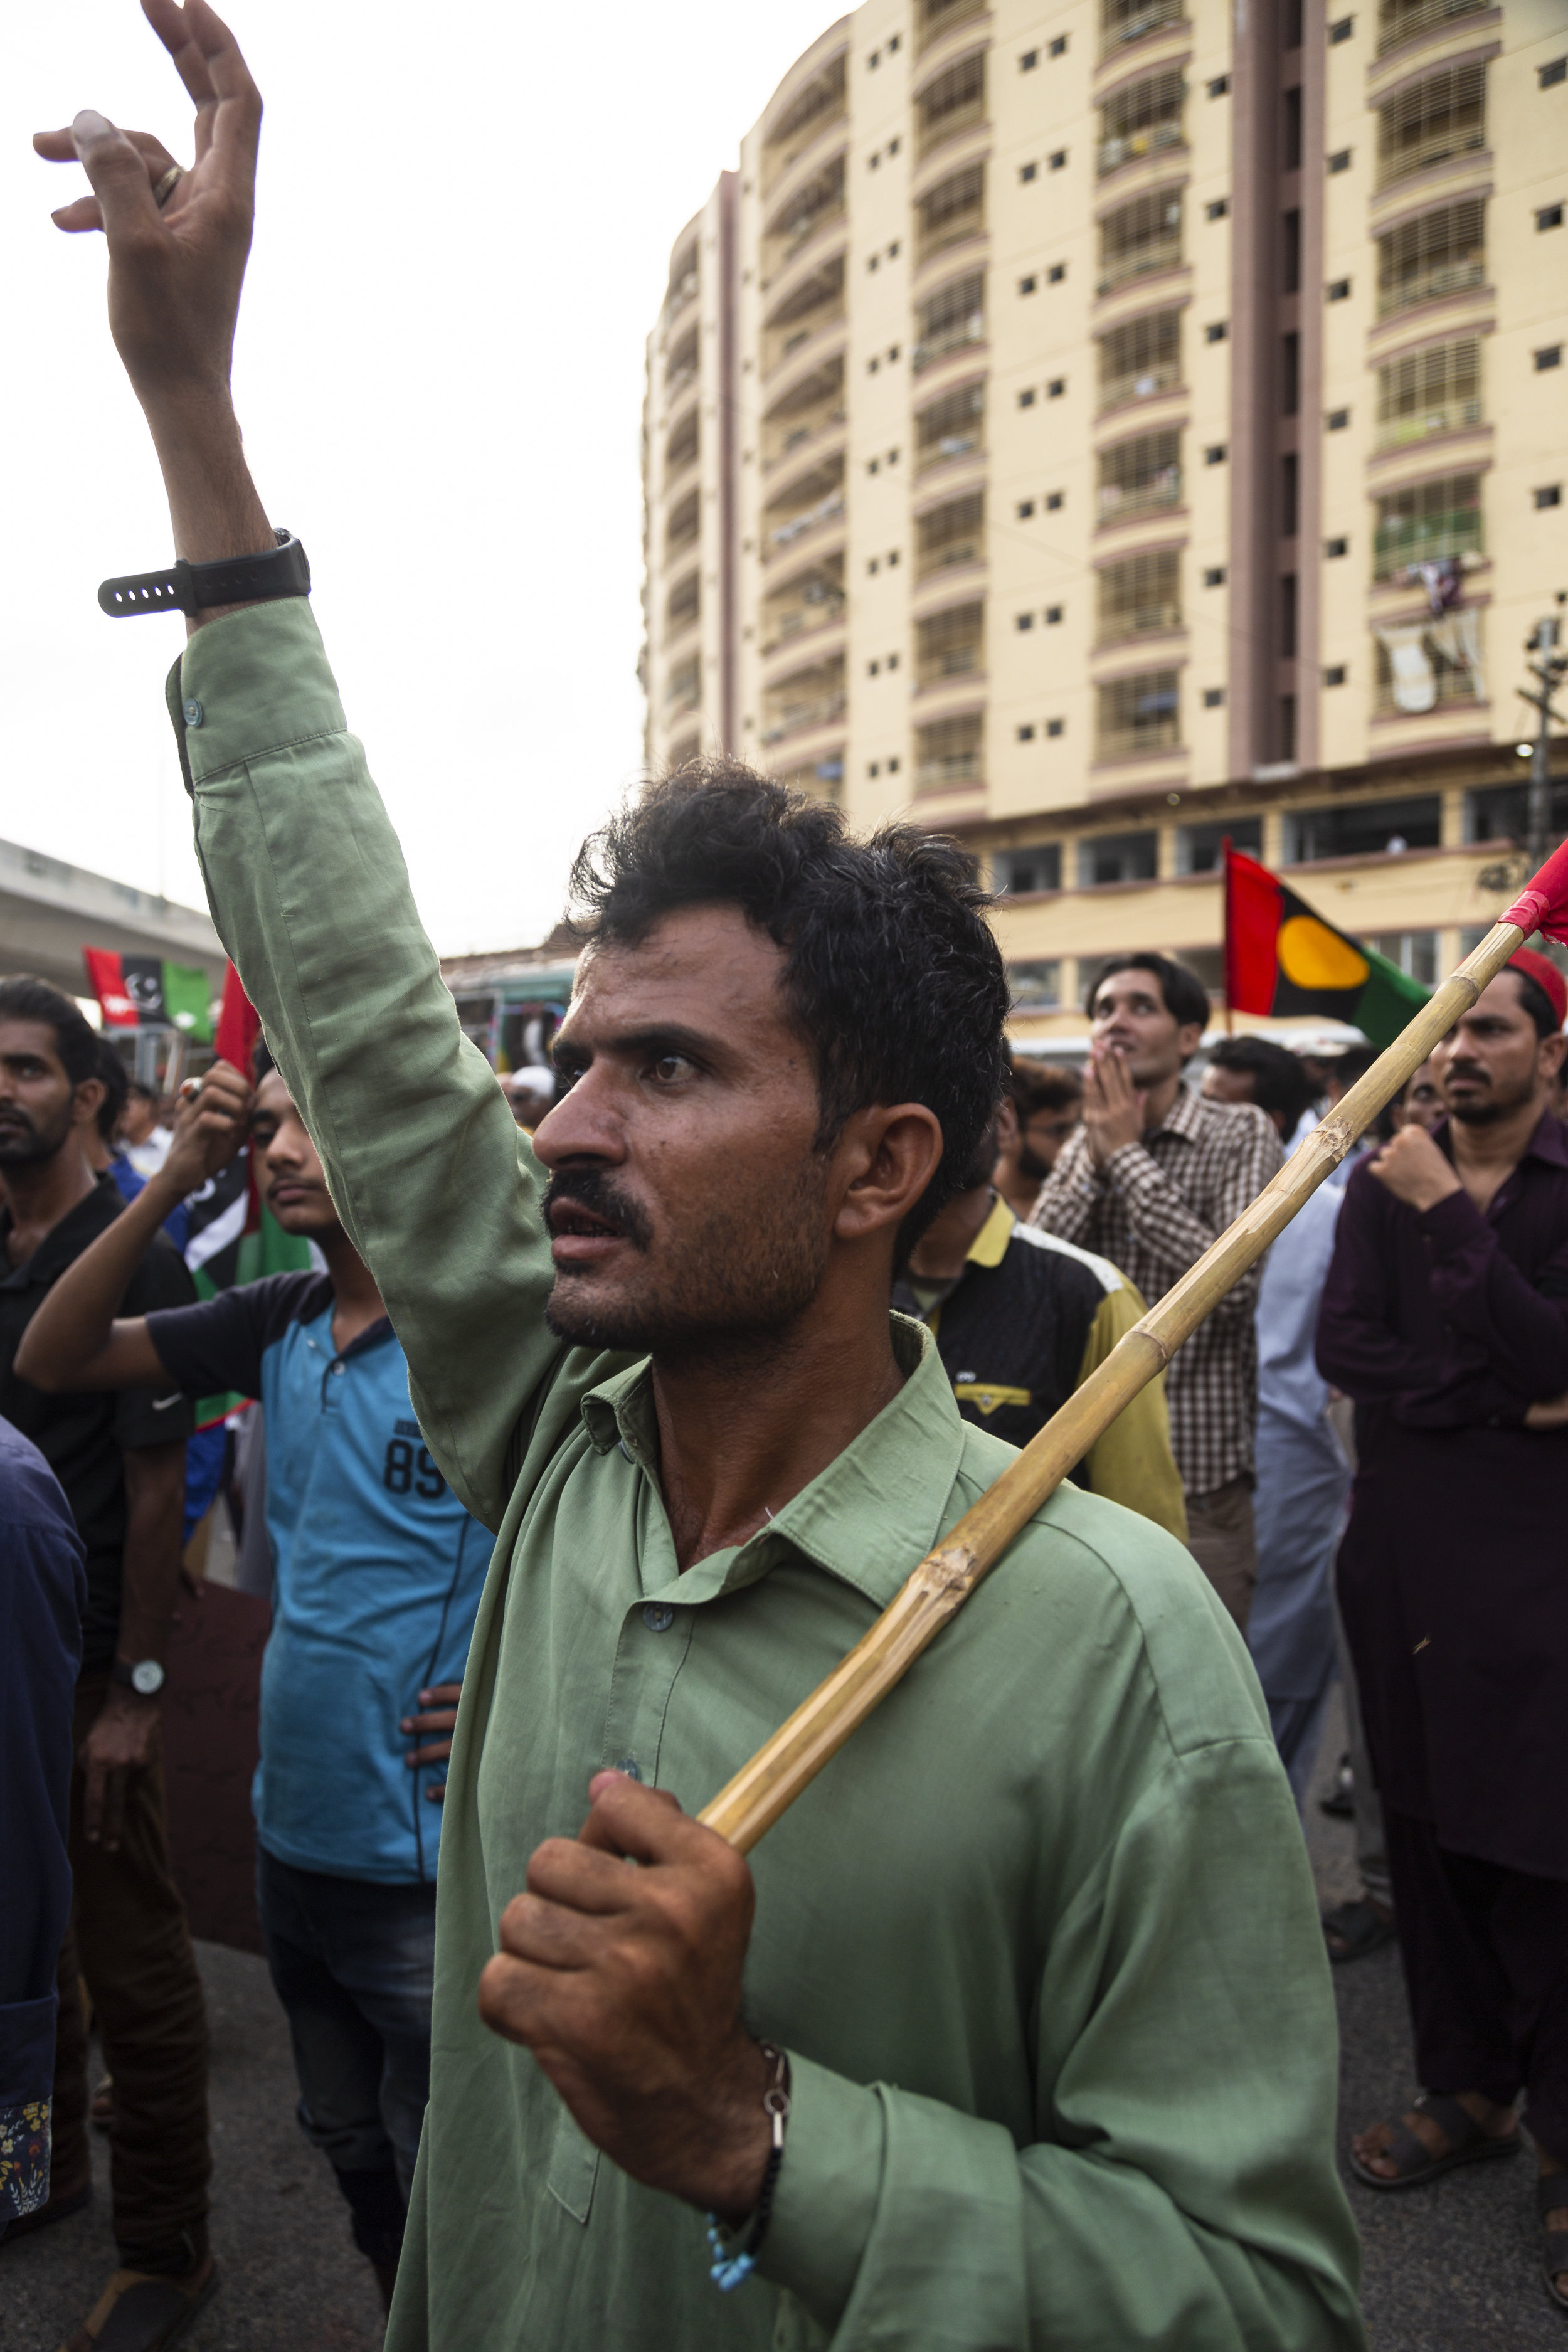 Supporters of the Pakistan Peoples Party protest the arrest of former president Asif Ali Zardari in Karachi, Pakistan on June 11, 2019. Zardari was arrested by the National Accountability Bureau on June 10 on charges of money laundering.